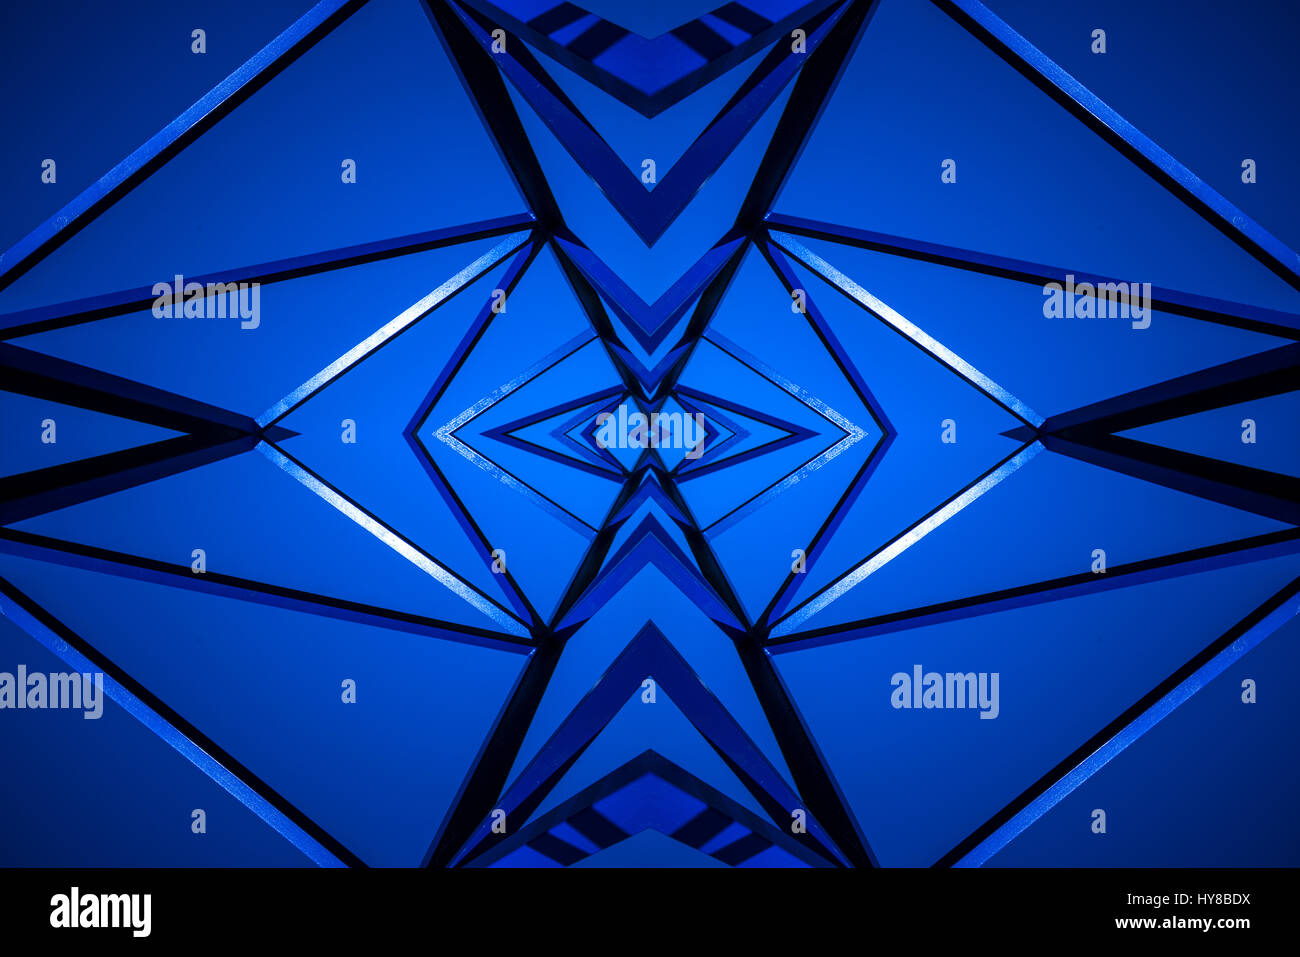 Blue and Black lines mirrored intersecting - Stock Image